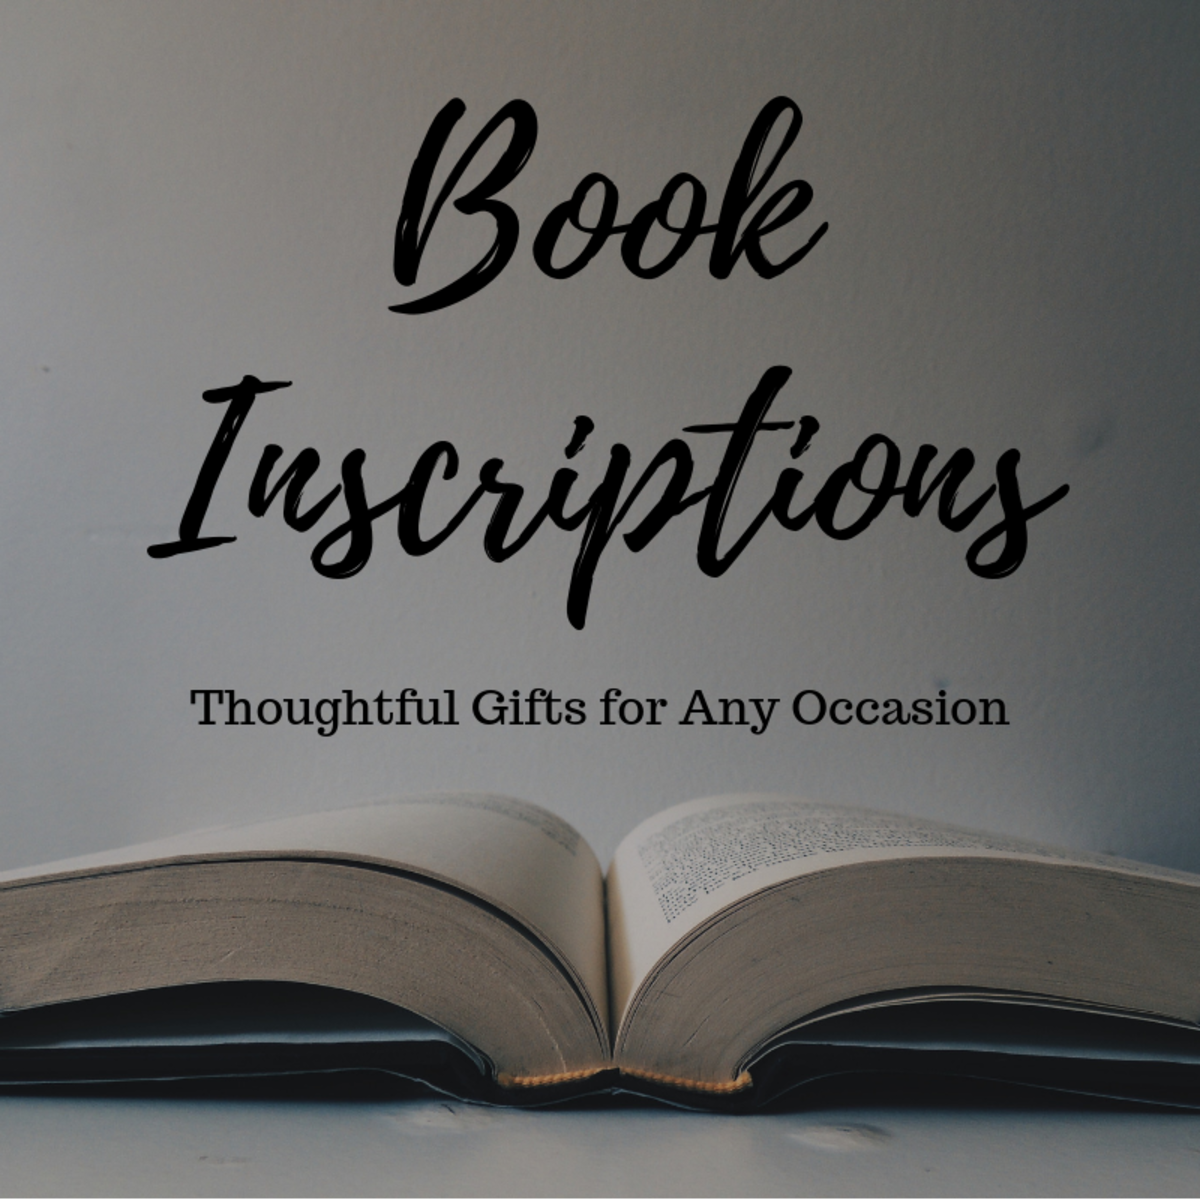 How to Write Book Inscriptions: Thoughtful Gifts for Any Occasion